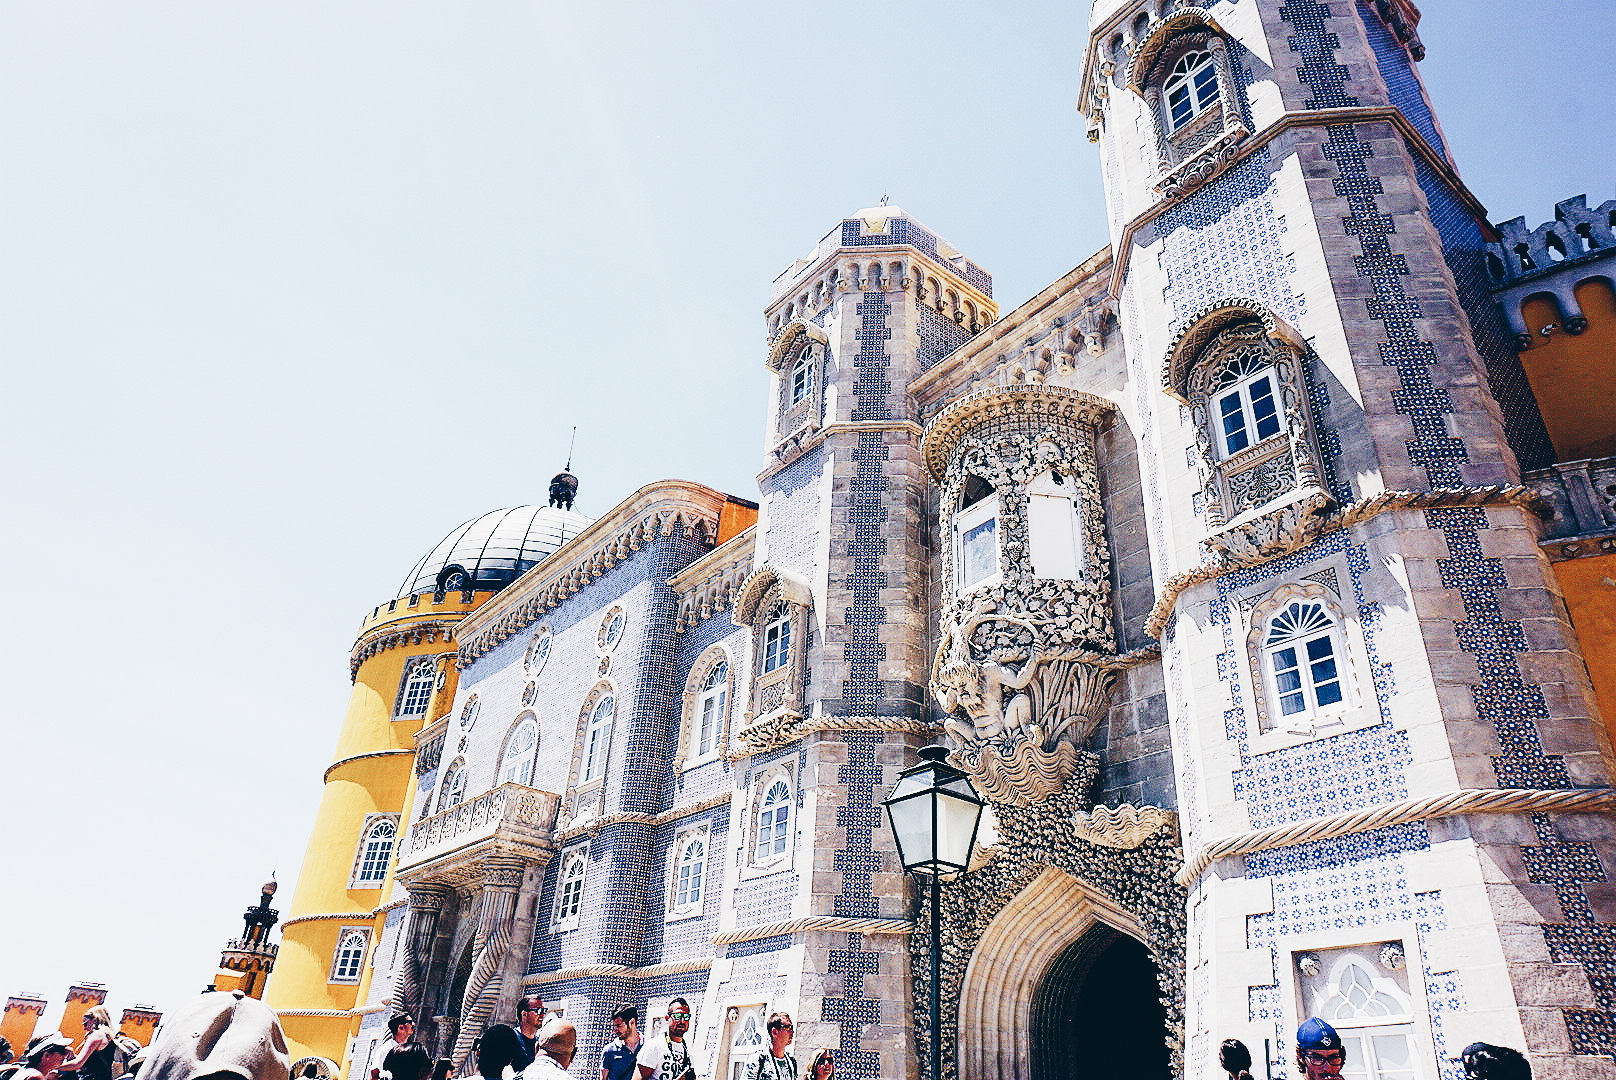 Pena Palace - The Pena Palace is a Romanticist castle situated in Sintra. Attract tourists and inspire artists with his beautiful arquitecture,it looks like is made of a different pile of castles because of his bright colourful walls.This place is Magical.